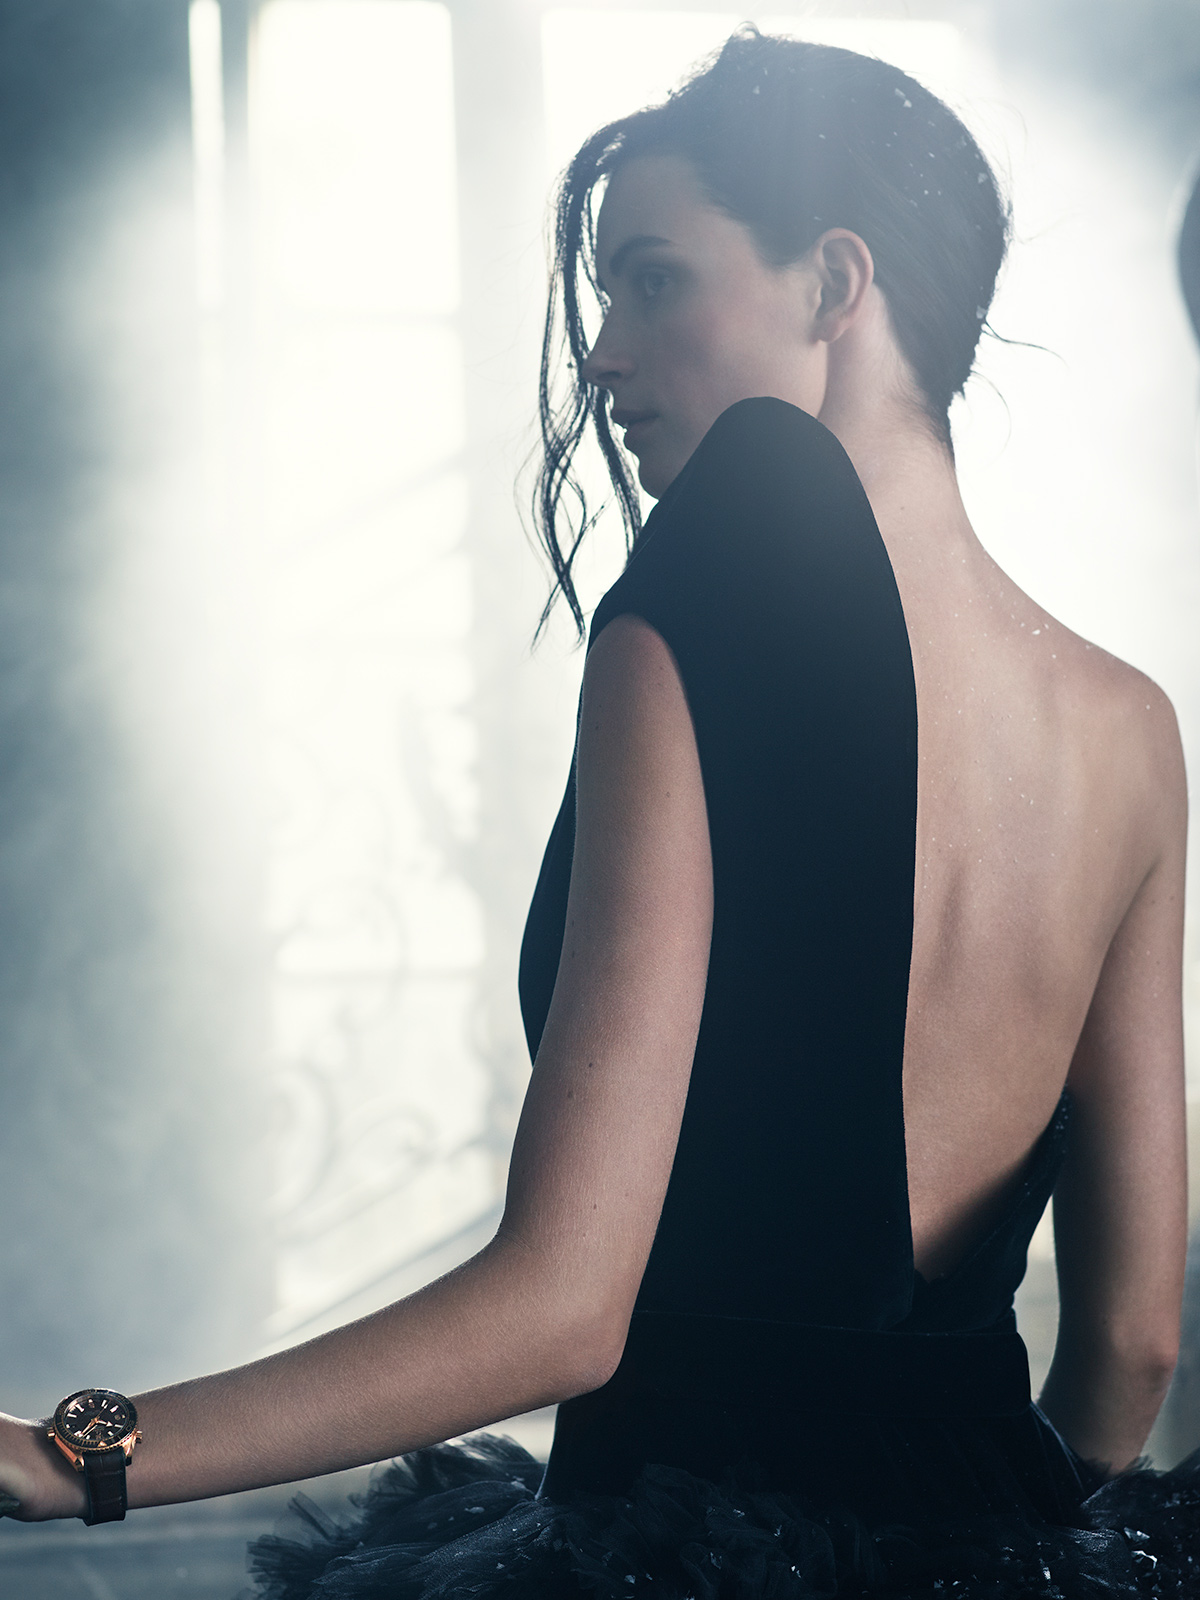 Half-length picture of a dark haired woman viewed from the rear wearing a black dress on only one shoulder